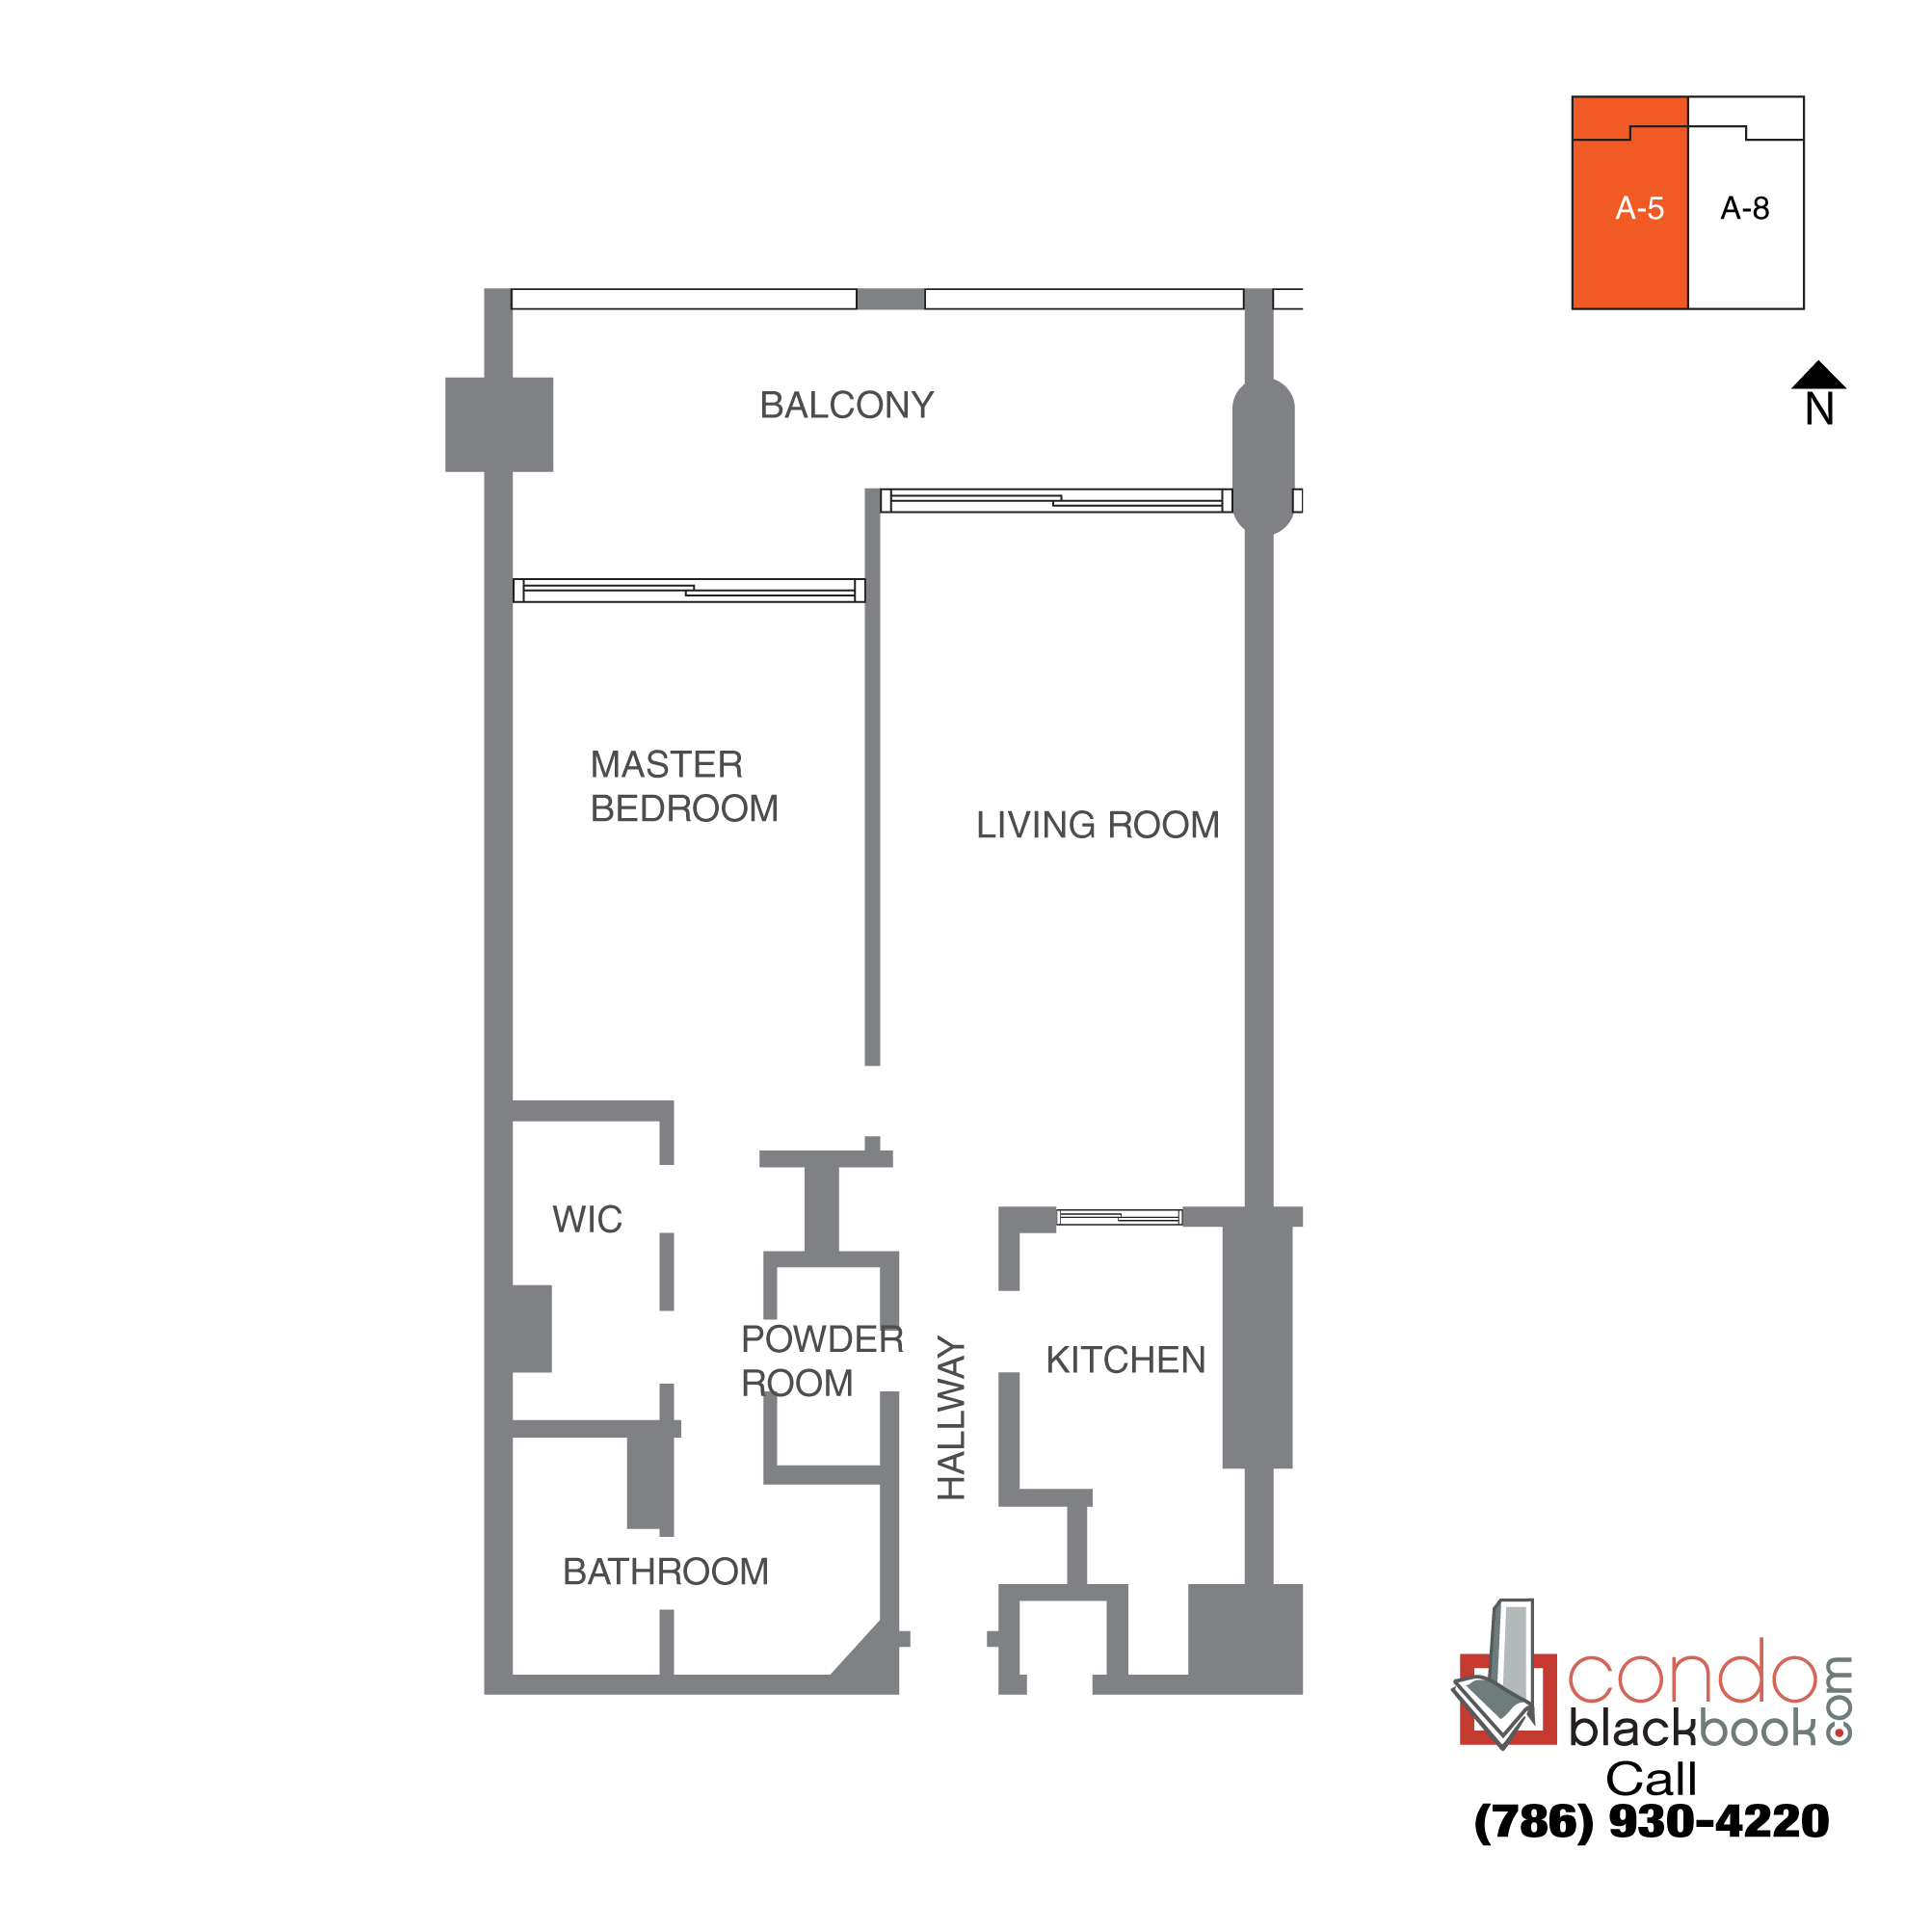 Floor plan for The Grand Arts & Entertainment District Miami, model Unit 38, line A-1038 to A-4238,  B-4138, C-4038, D-3938, 1/1.5 bedrooms, 1,066 sq ft